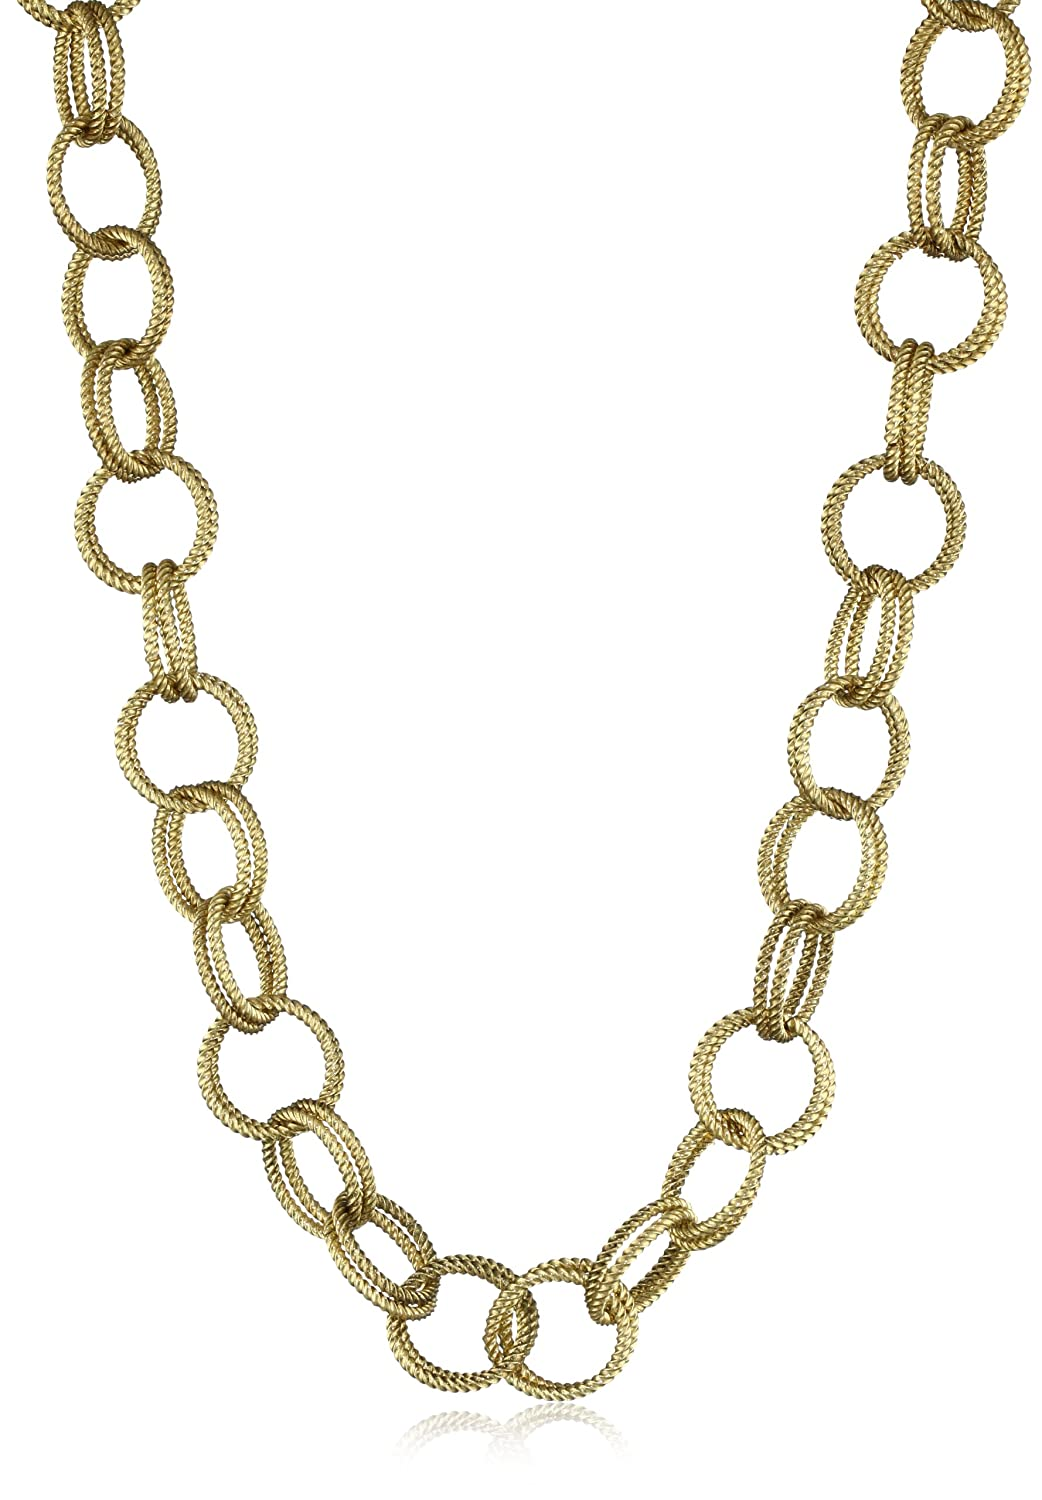 Goldkette gangster png  Amazon.com: Betsey Johnson Gold-Tone Textured Chain-Link Long ...